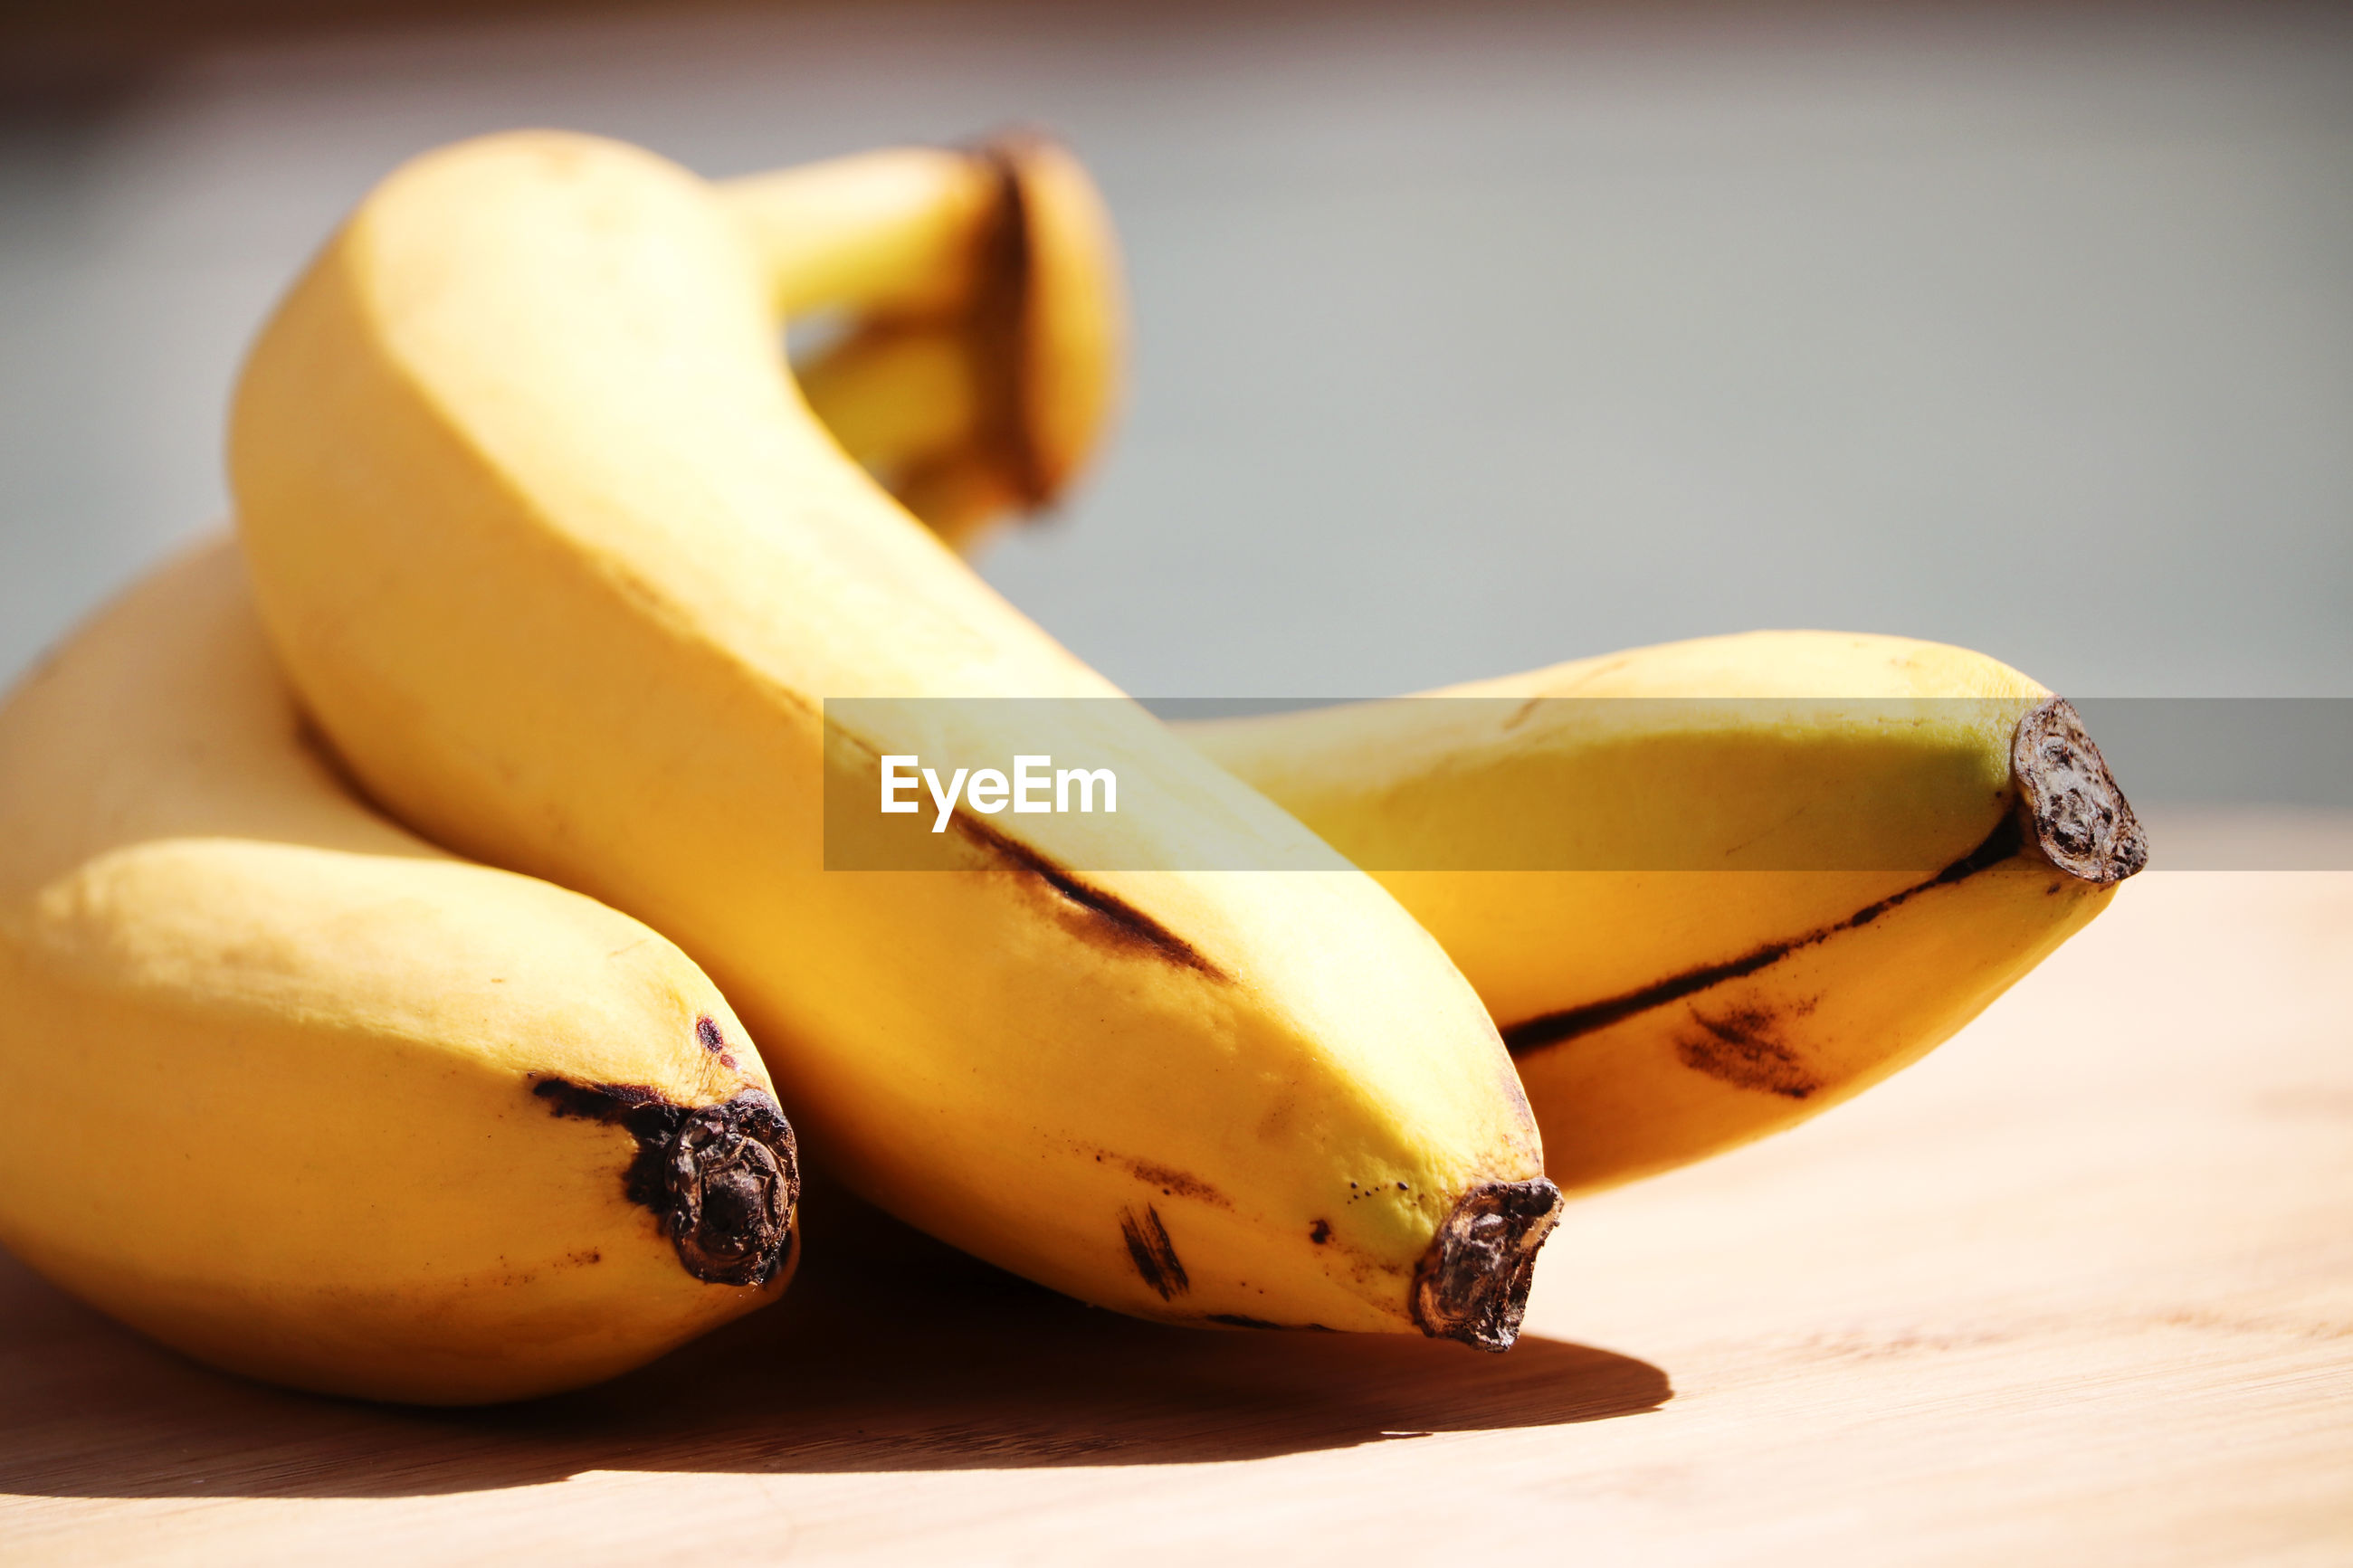 CLOSE-UP OF YELLOW BANANAS ON TABLE